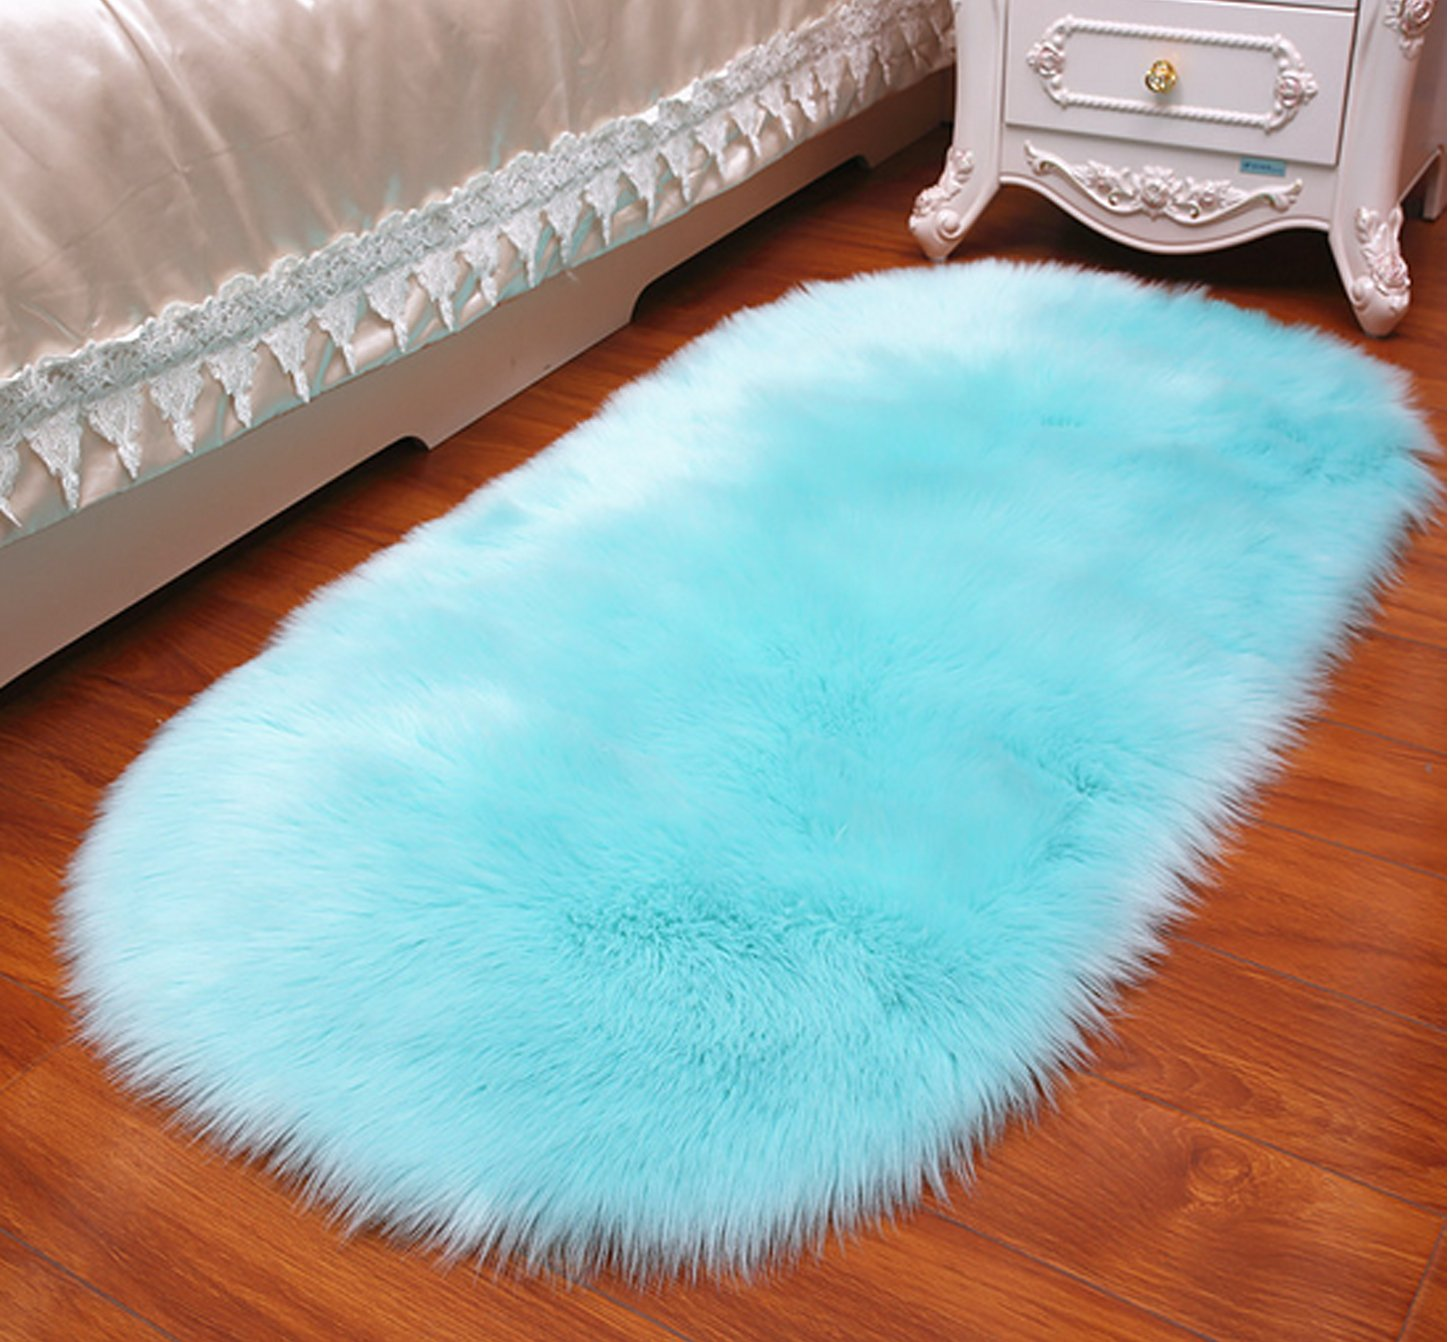 Faux Fur Rug Shag Fuzzy Fluffy Sheepskin Rug Kids Carpet Area Rug for Home Decor Living Room Bedroom 4×2.5ft,Blue